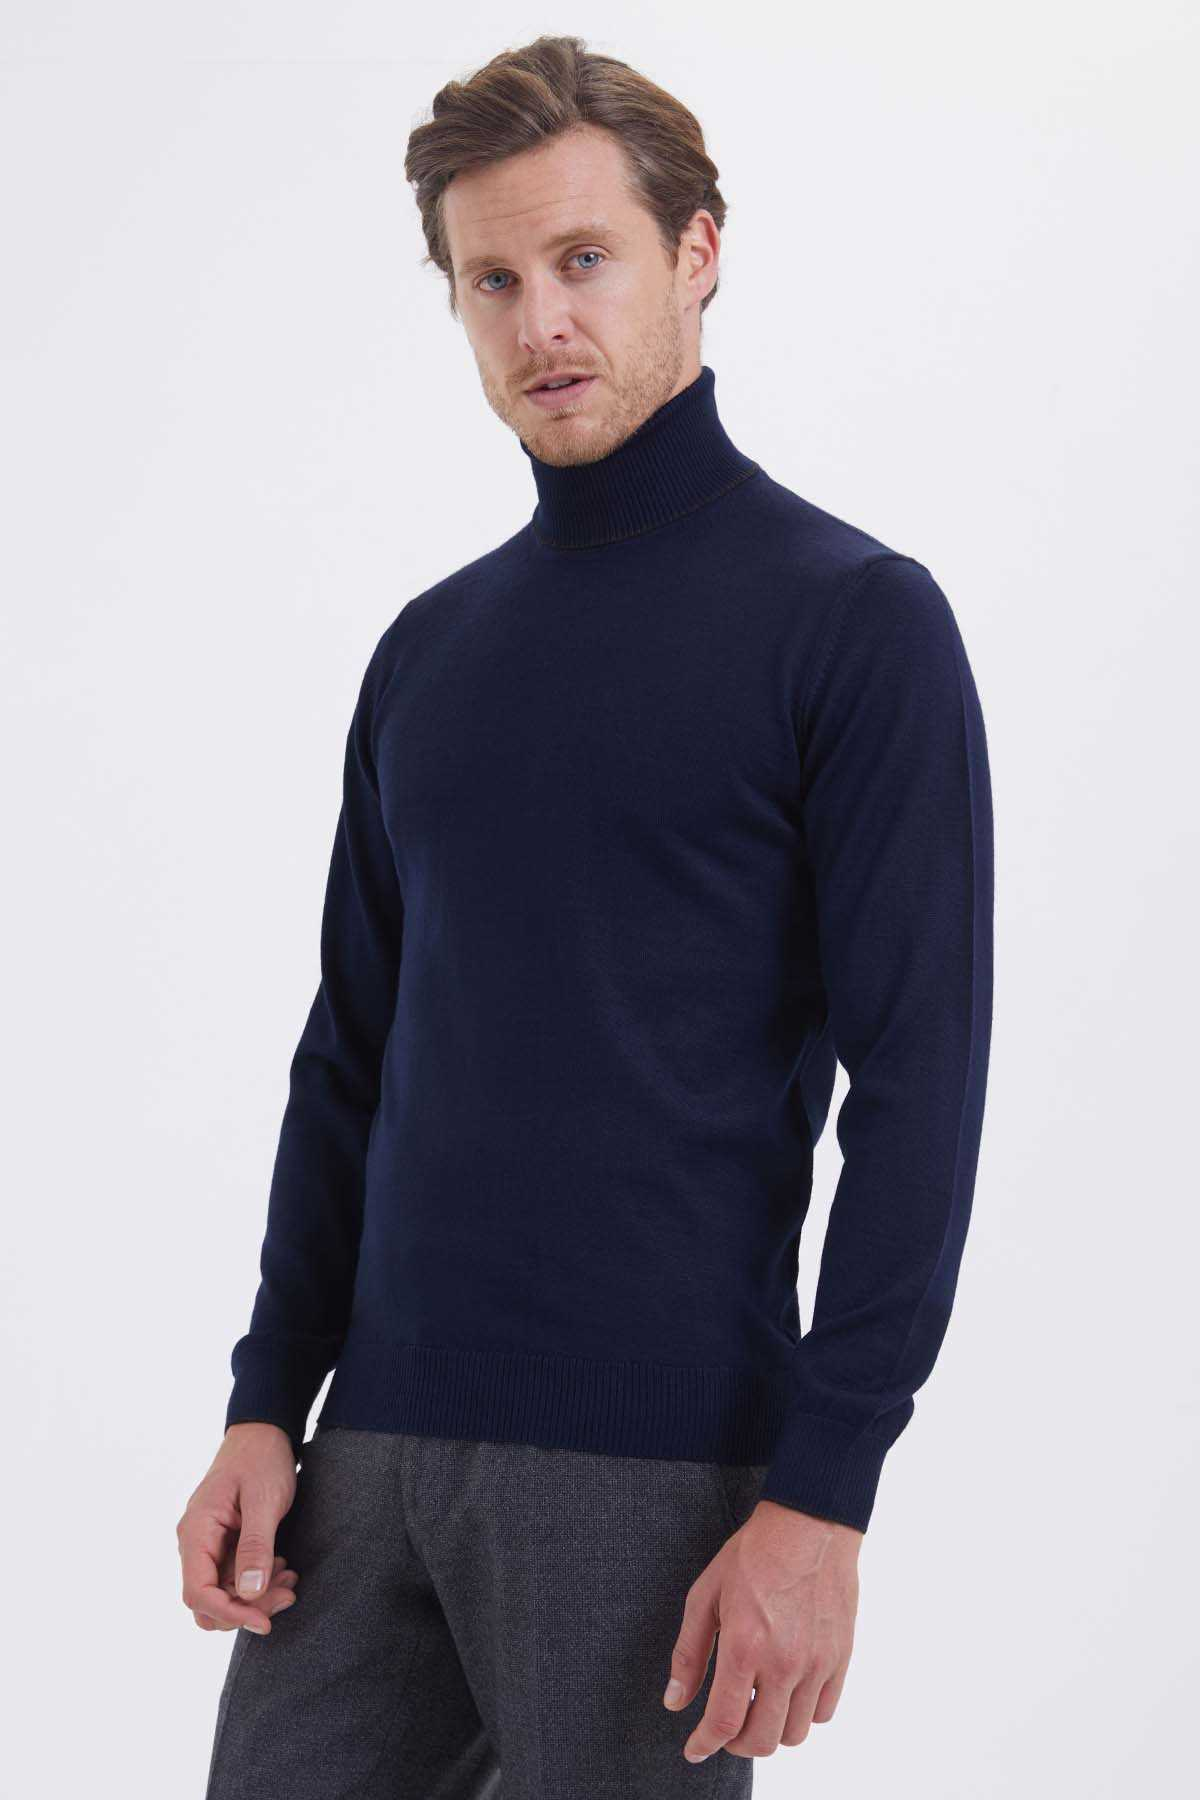 HATEM SAYKI - Navy Sweater